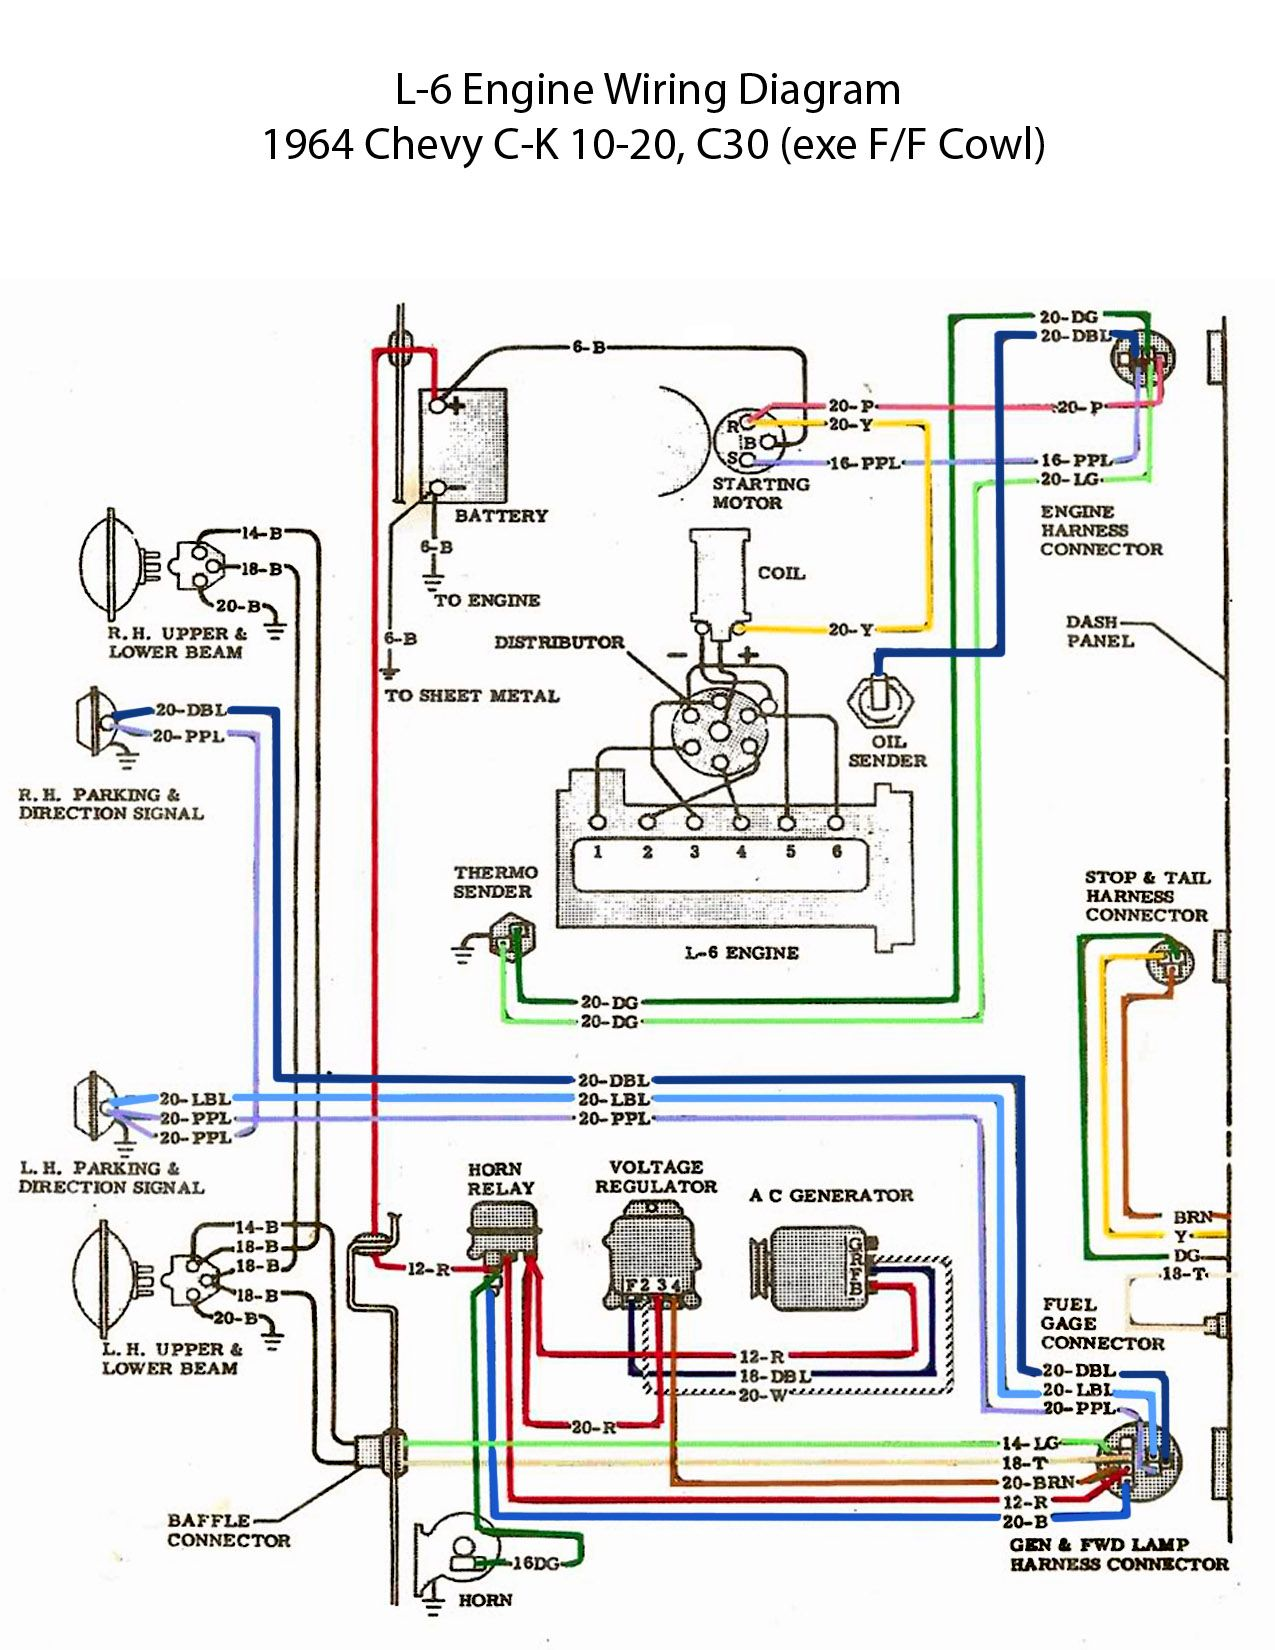 Electric L 6 Engine Wiring Diagram '60s Chevy C10 Wiring 1970 Chevy C10  Wiring-Diagram Chevy C10 Wiring Diagram